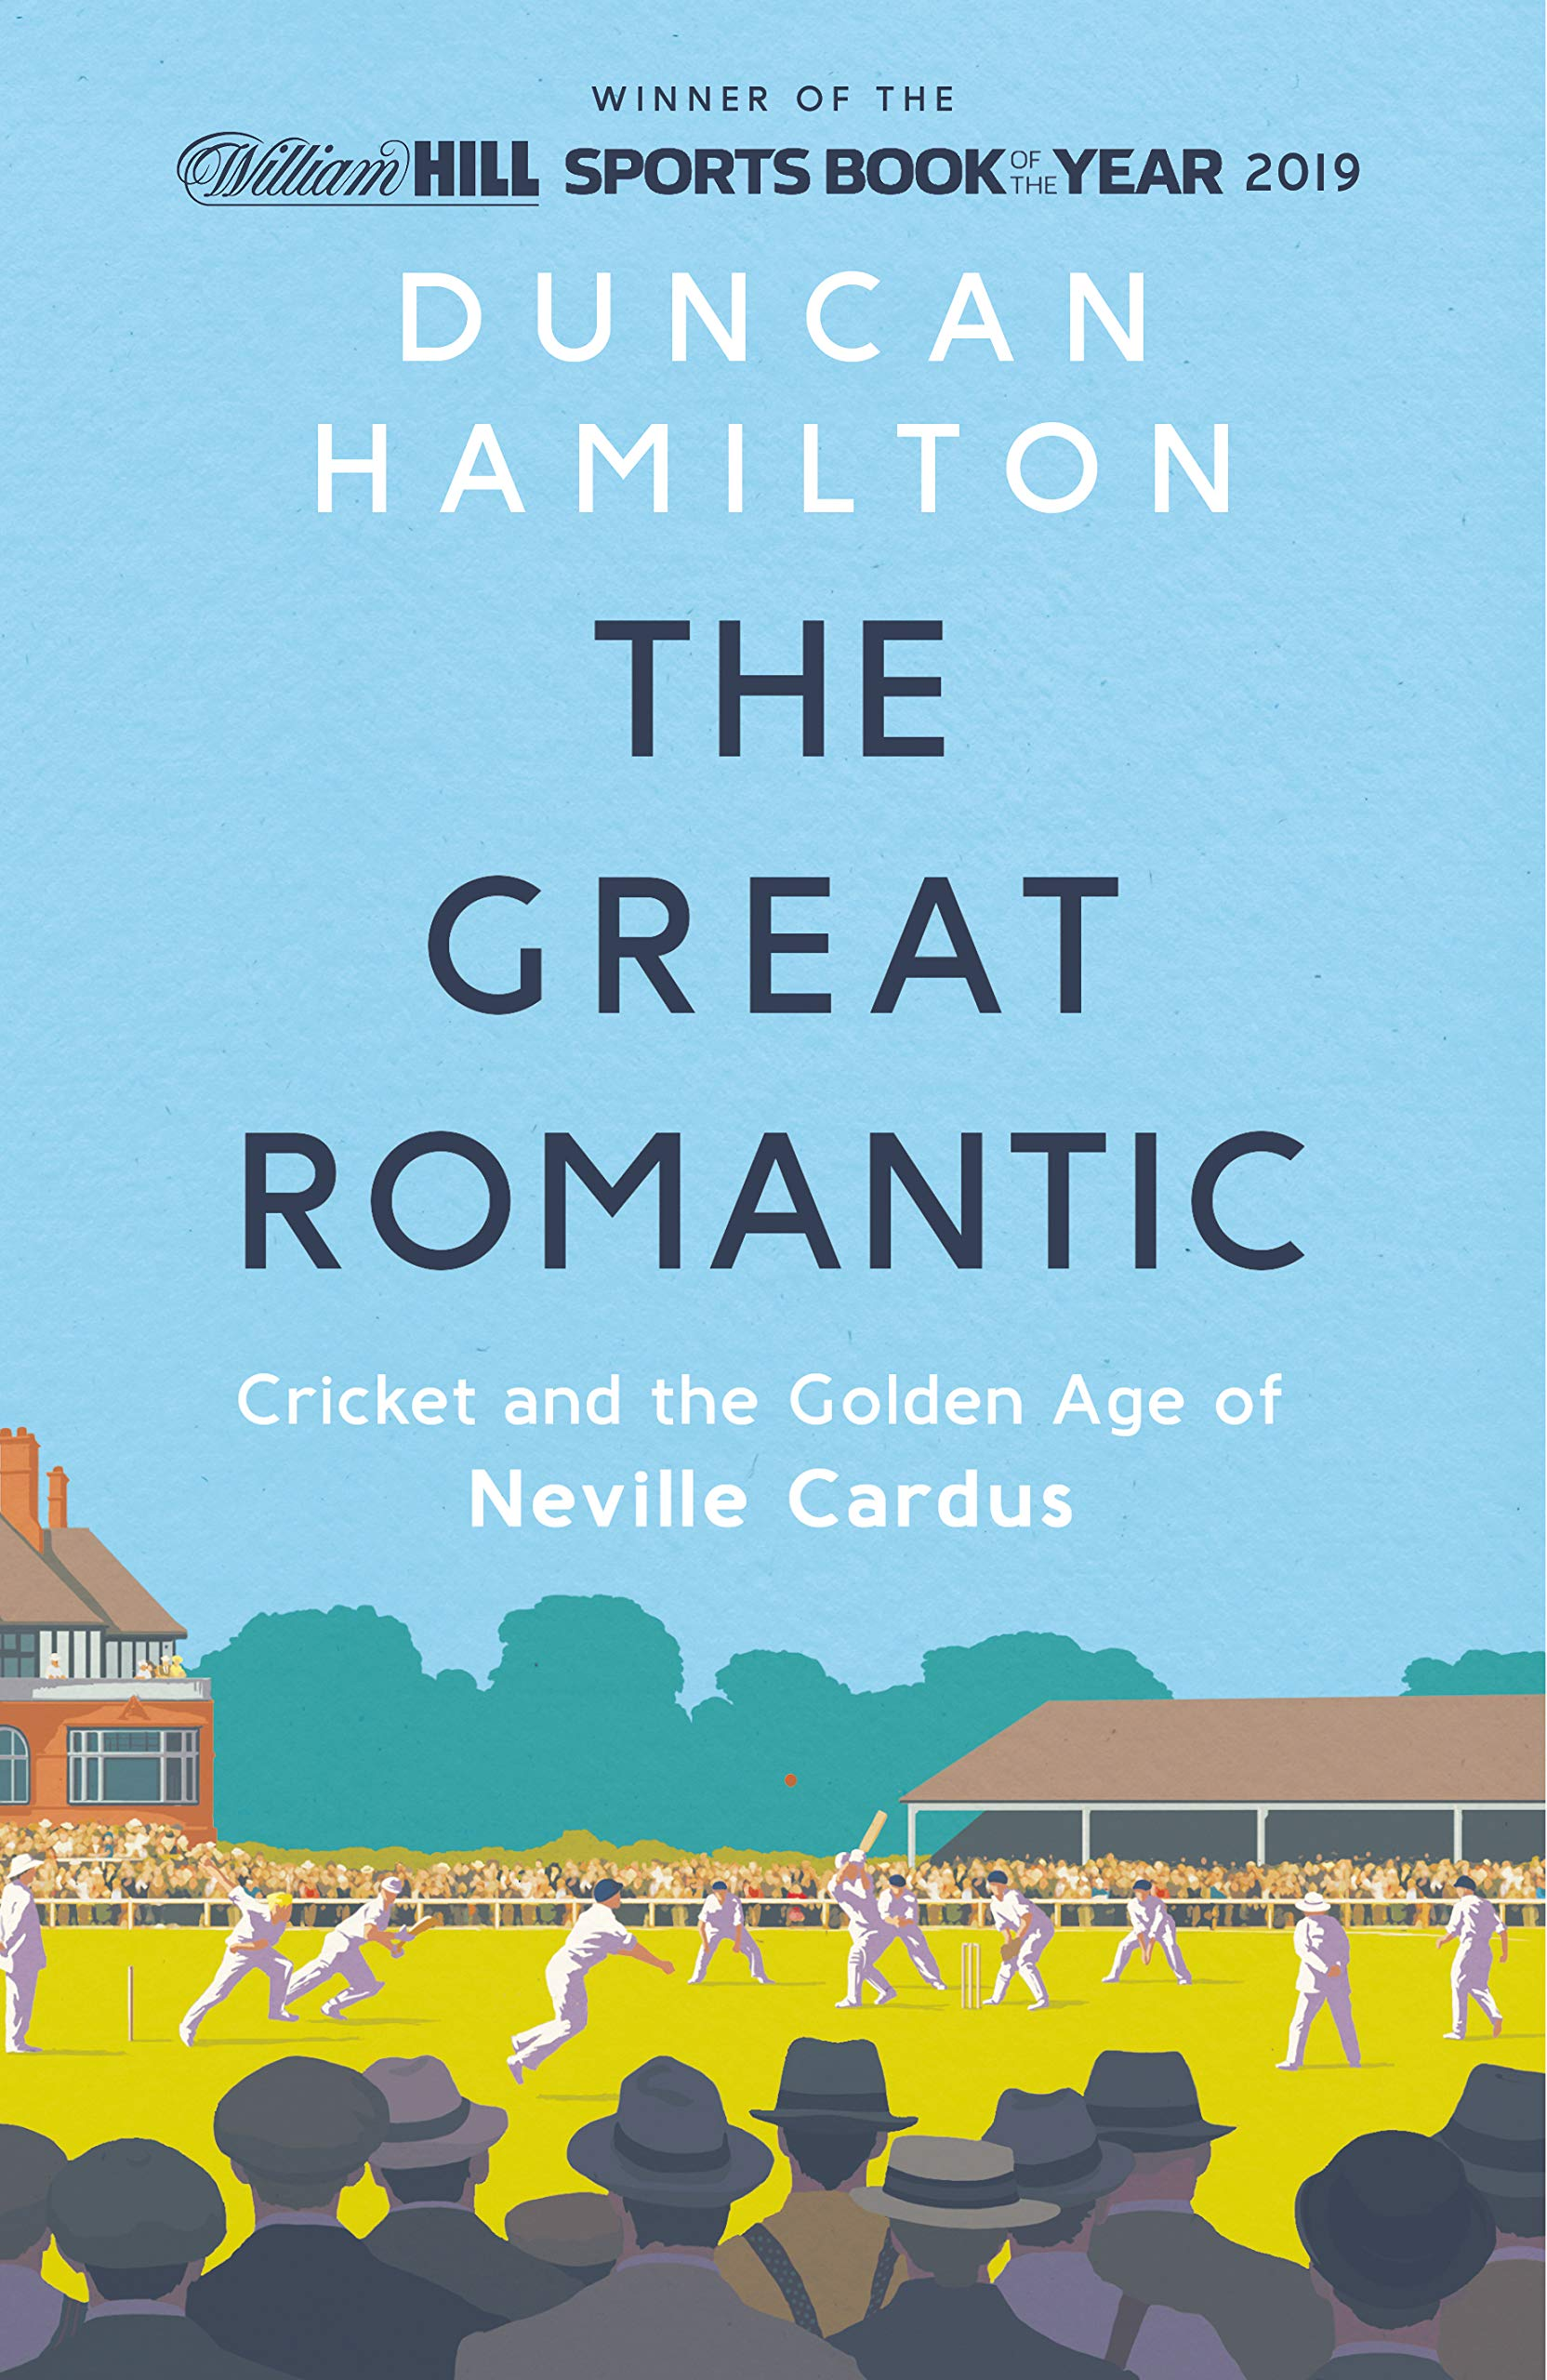 The Great Romantic  Cricket And The Golden Age Of Neville Cardus   Winner Of William Hill Sports Book Of The Year 2019